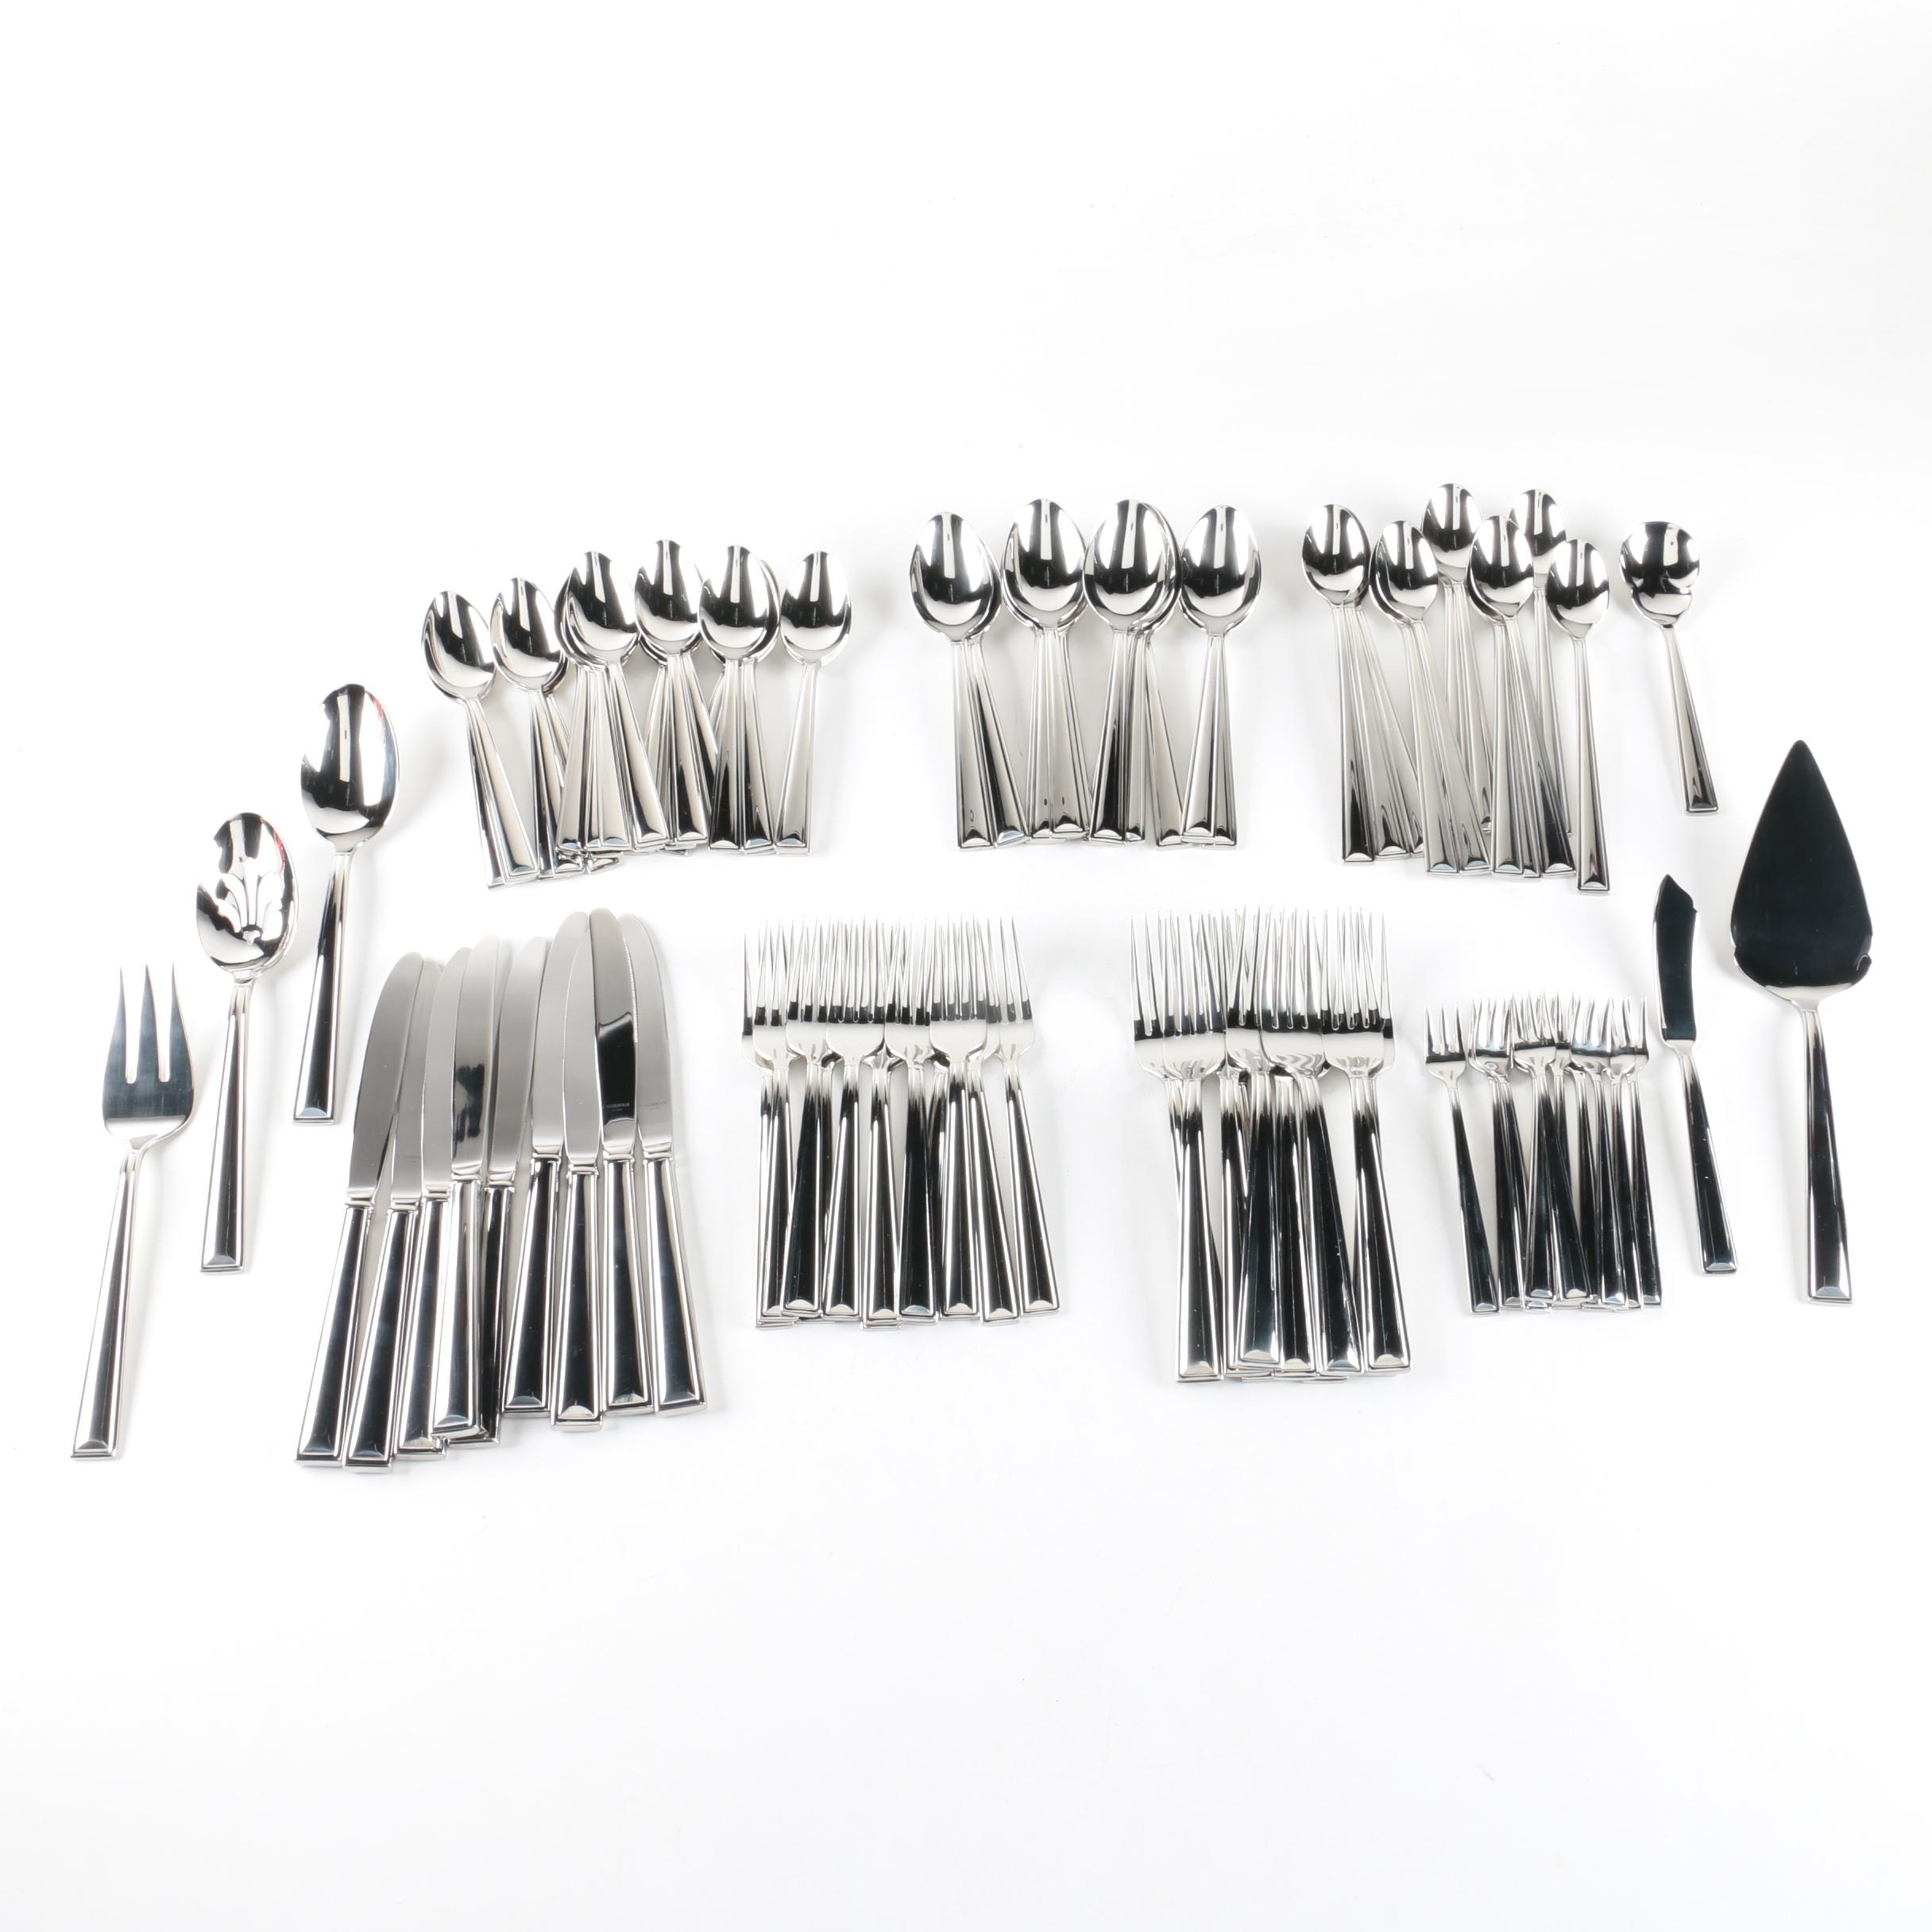 Gorham Stainless Steel Flatware Set